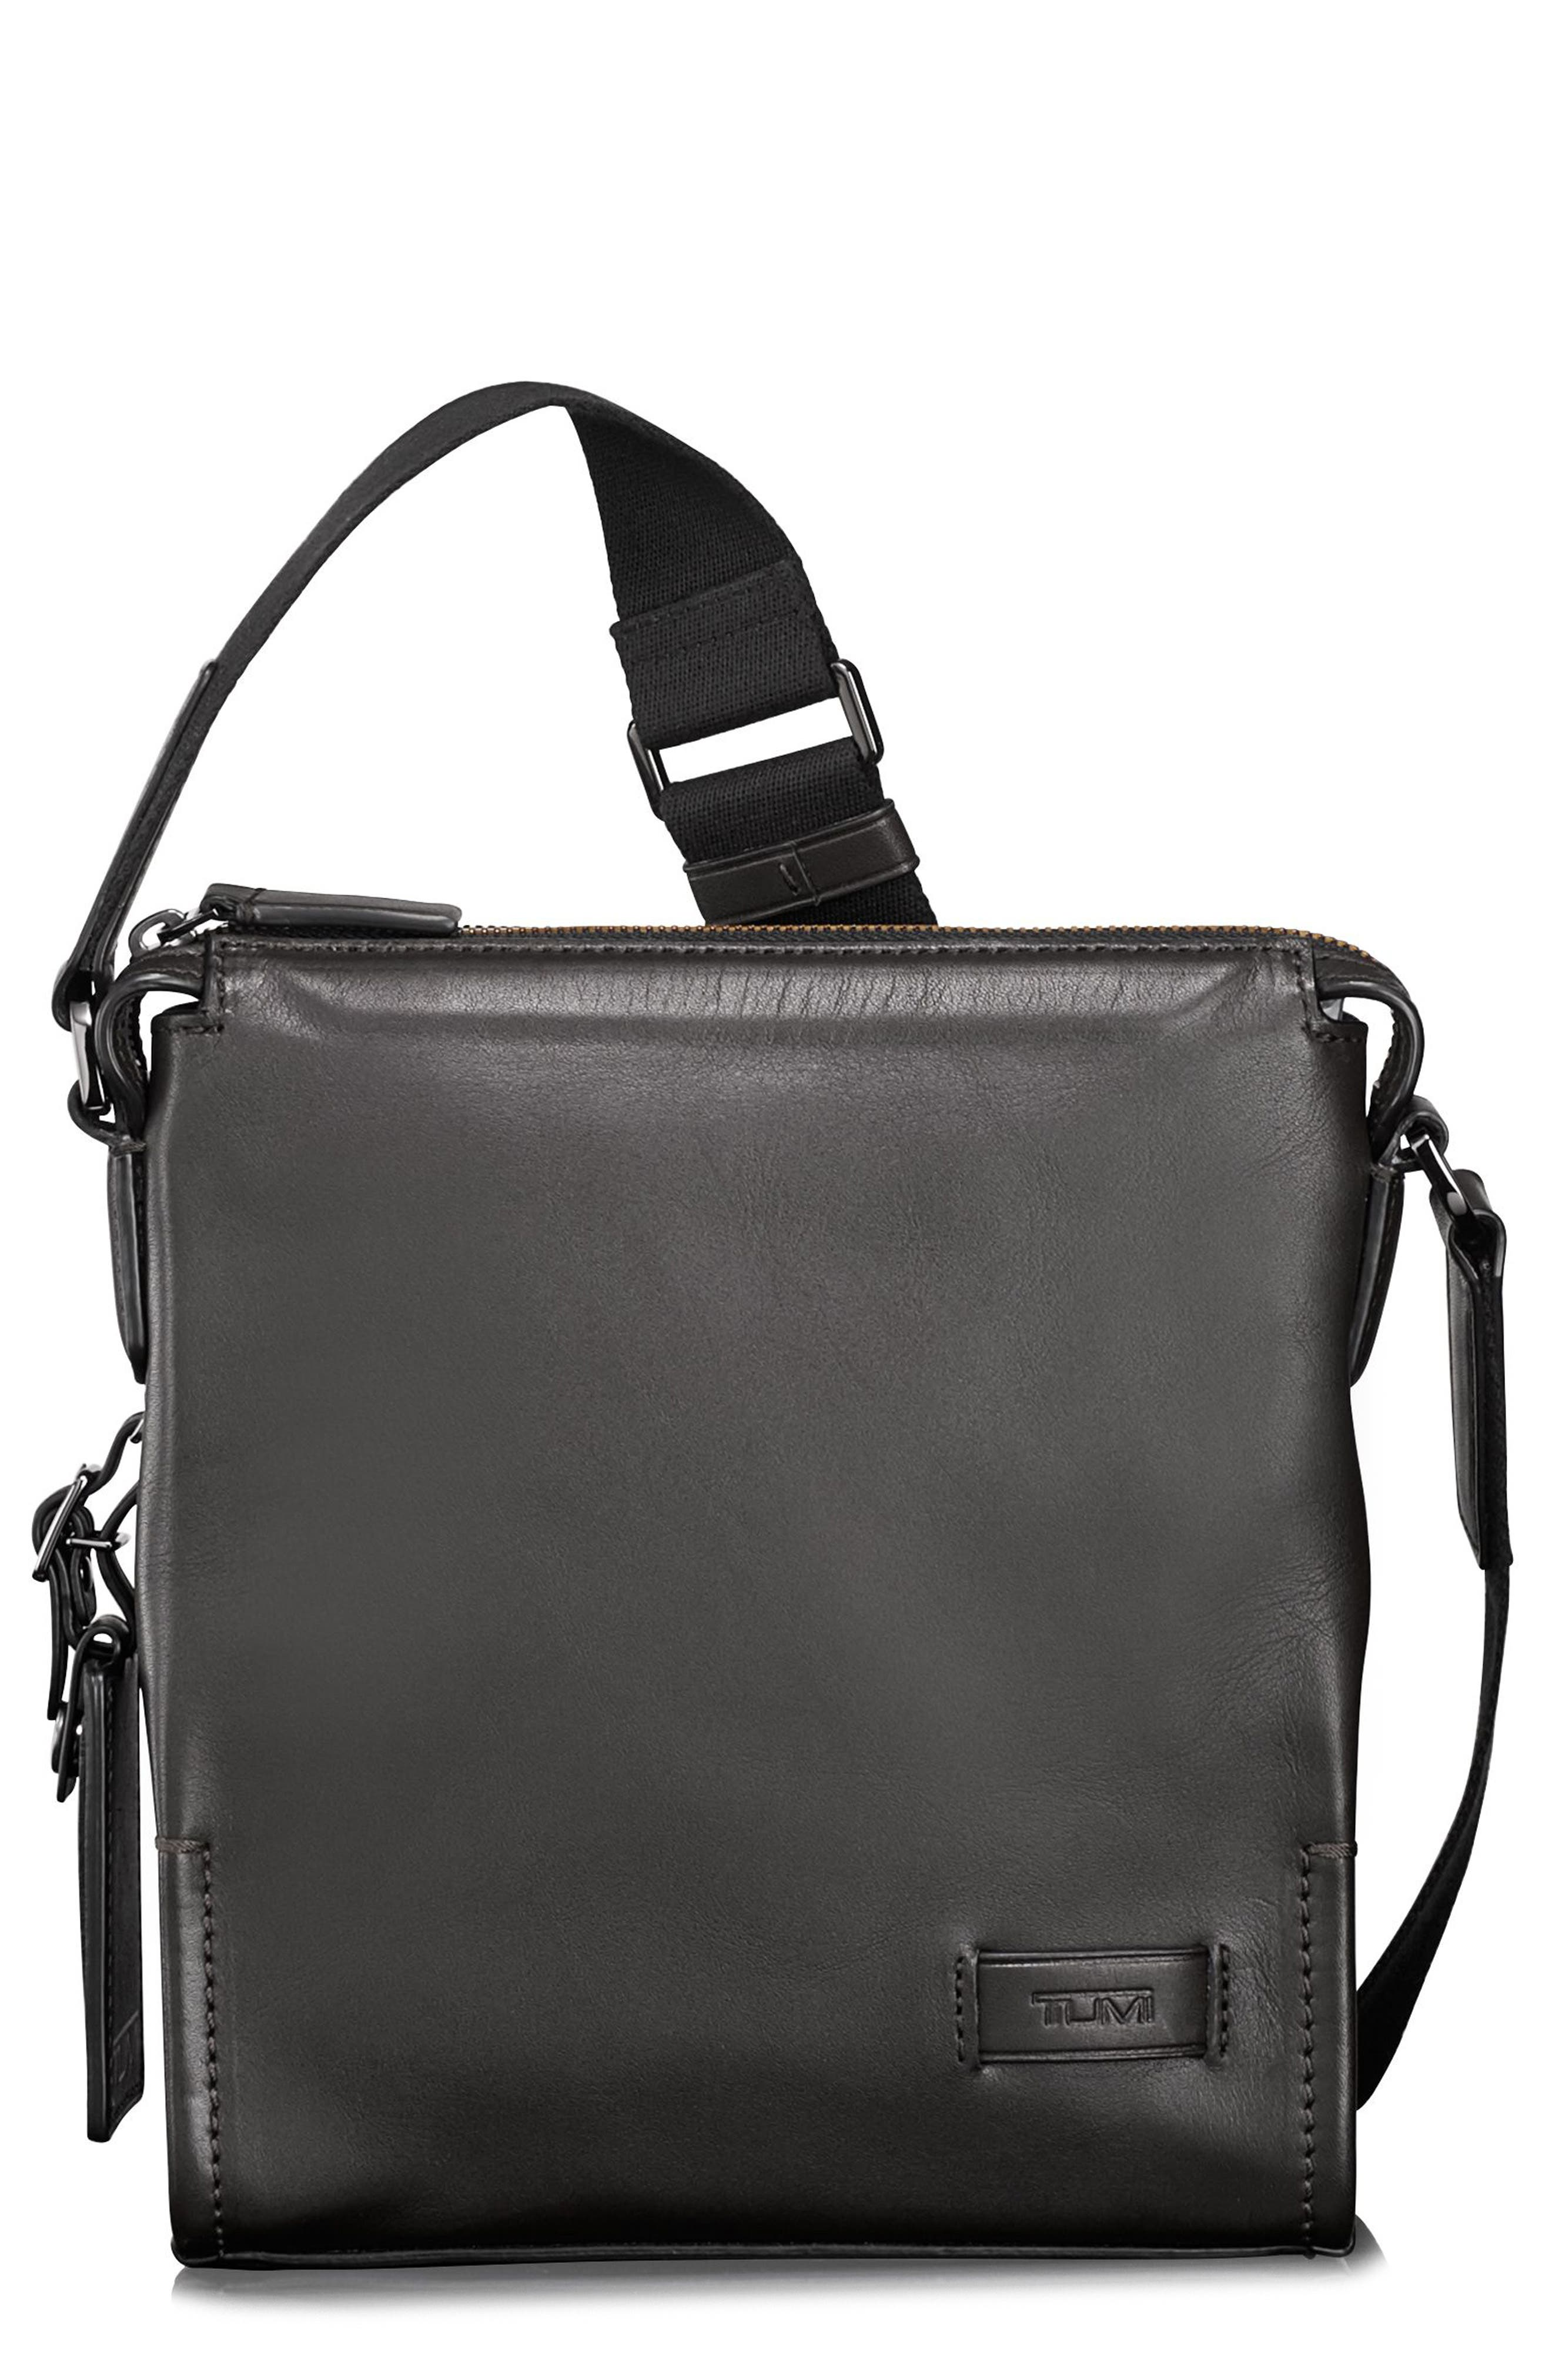 TUMI Harrison Scott Leather Messenger Bag